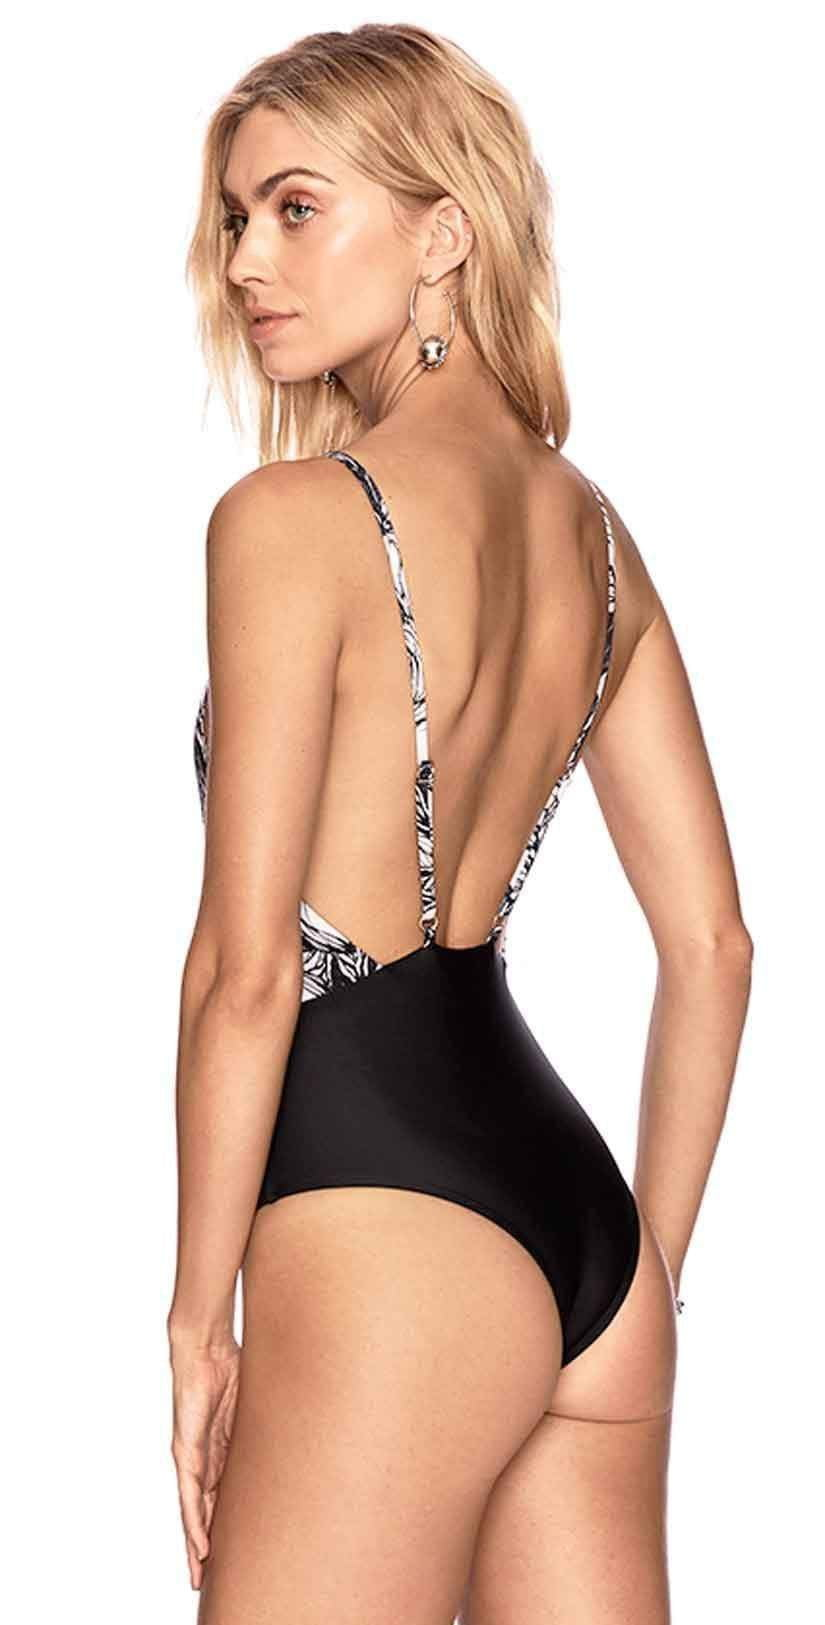 Beach Riot Leah One Piece DFALOP1-BW: